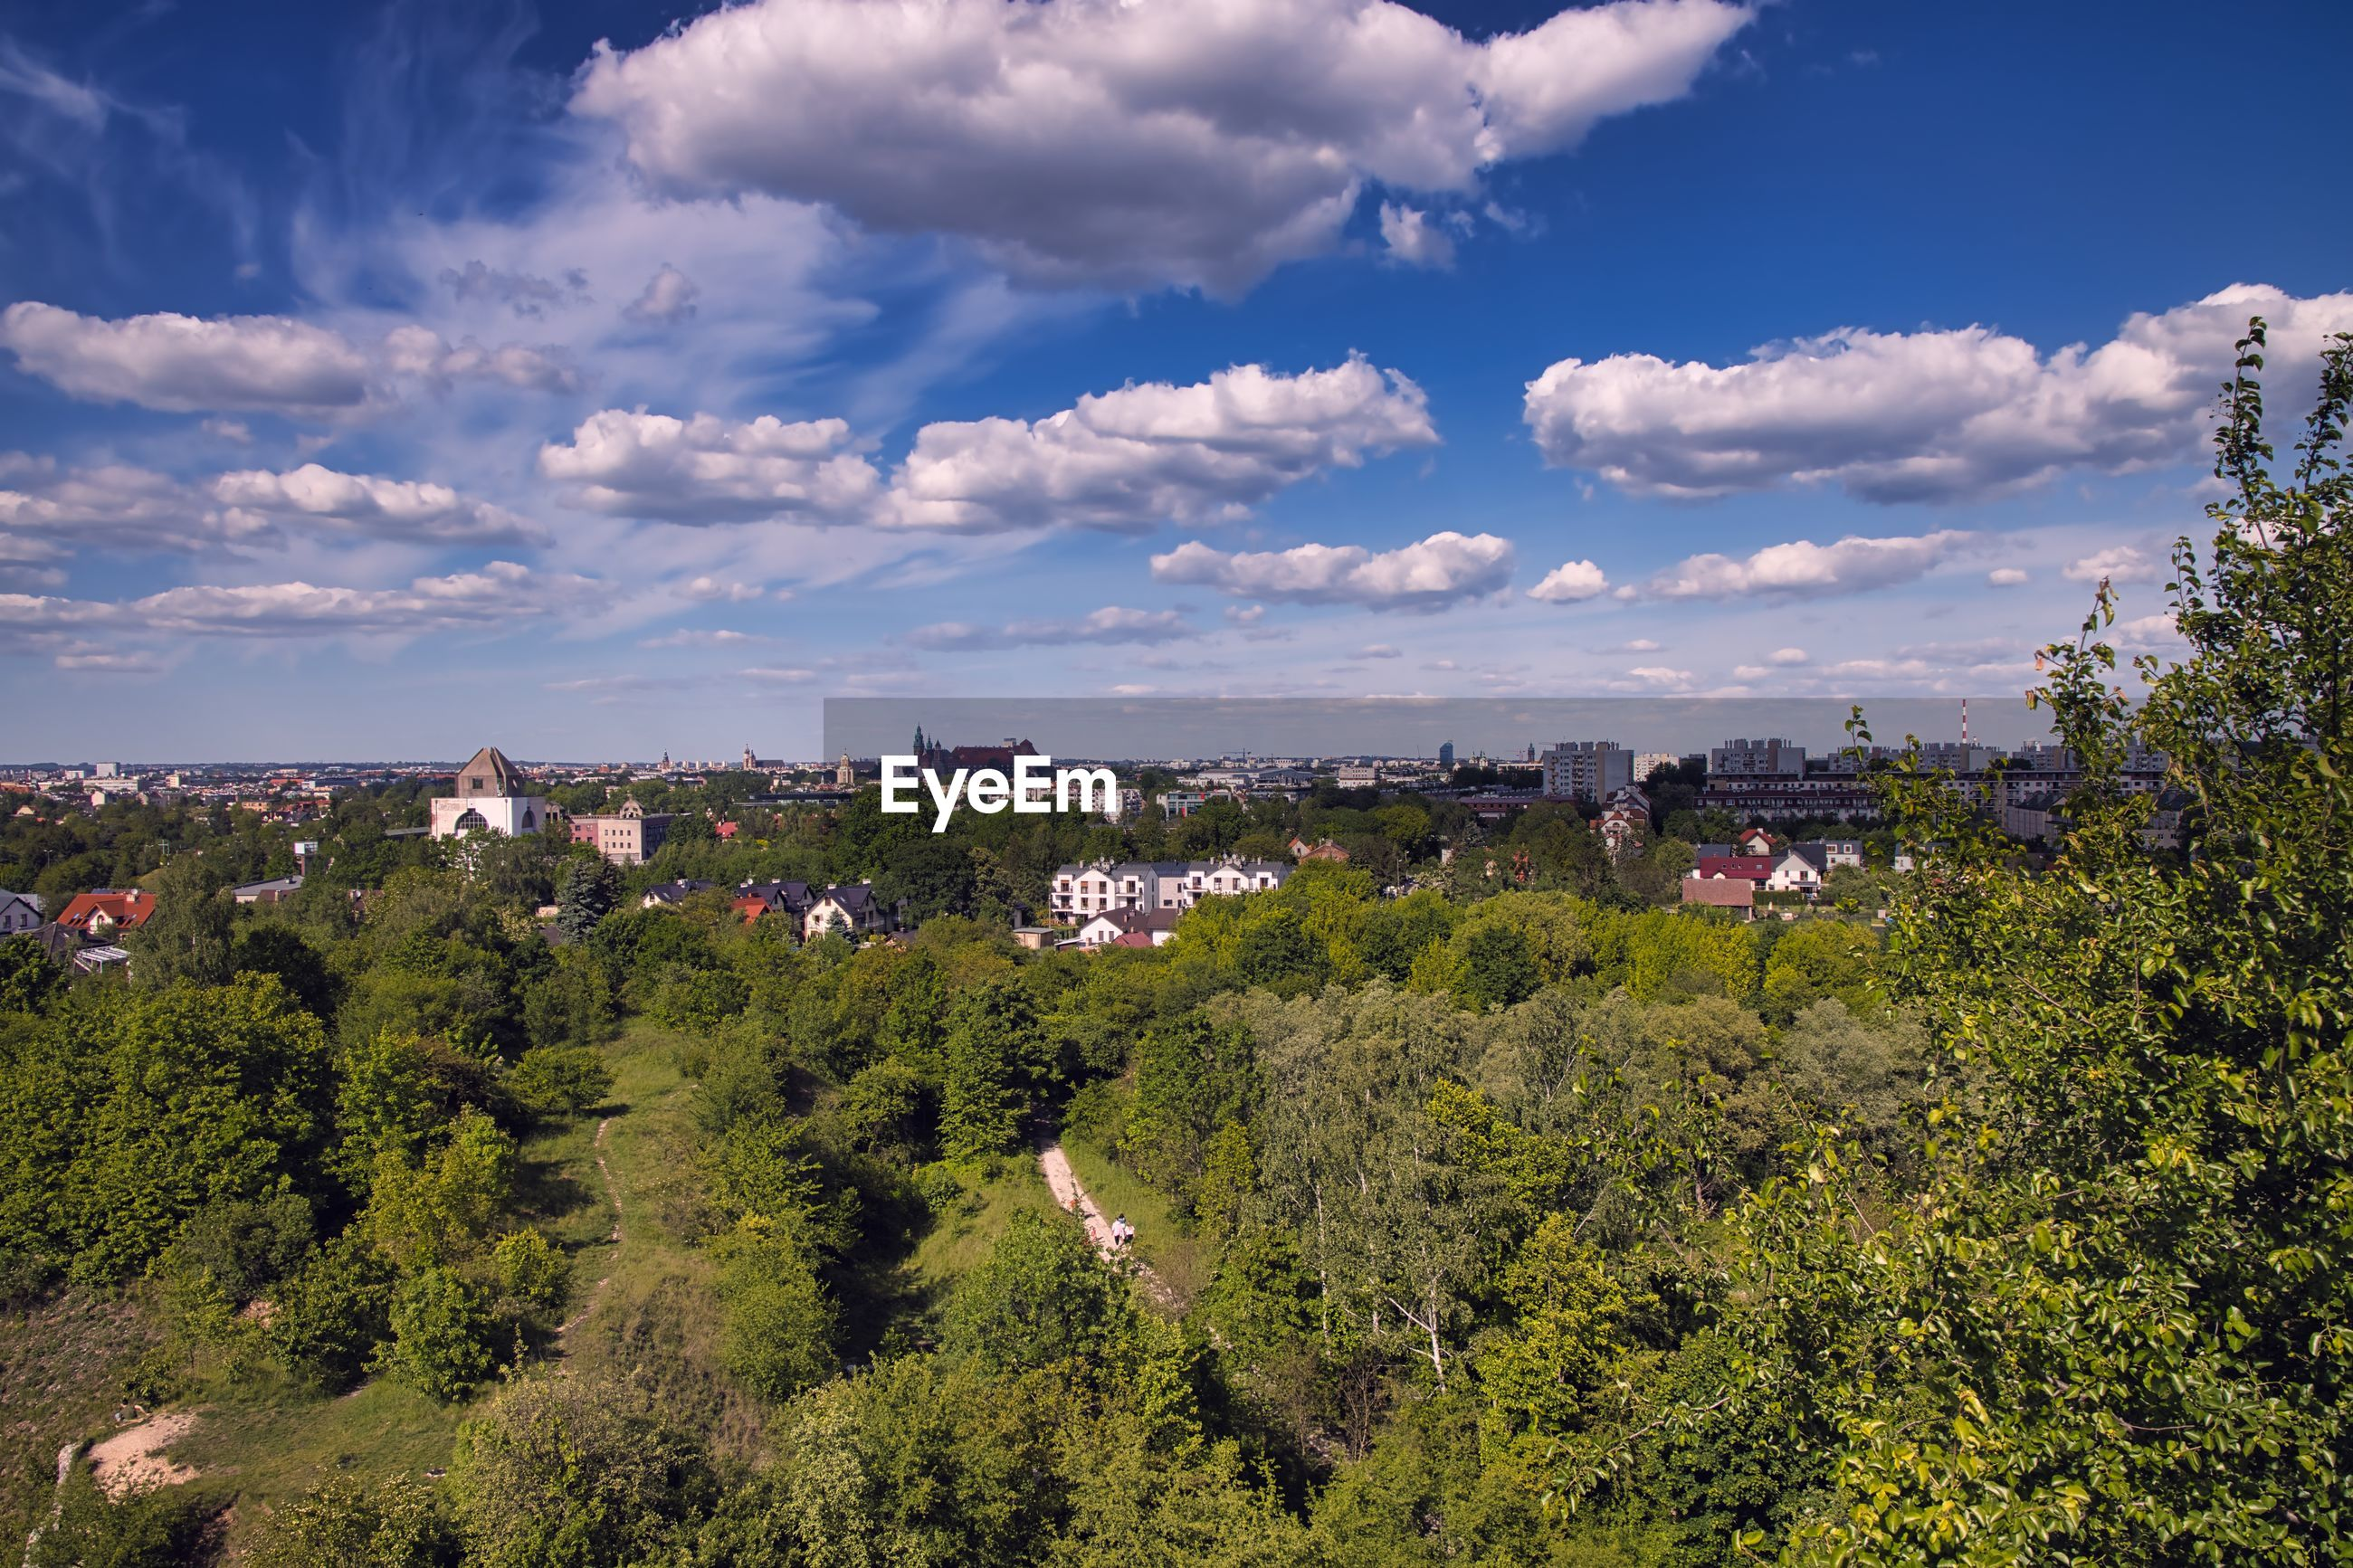 HIGH ANGLE VIEW OF TREES AND PLANTS AGAINST SKY